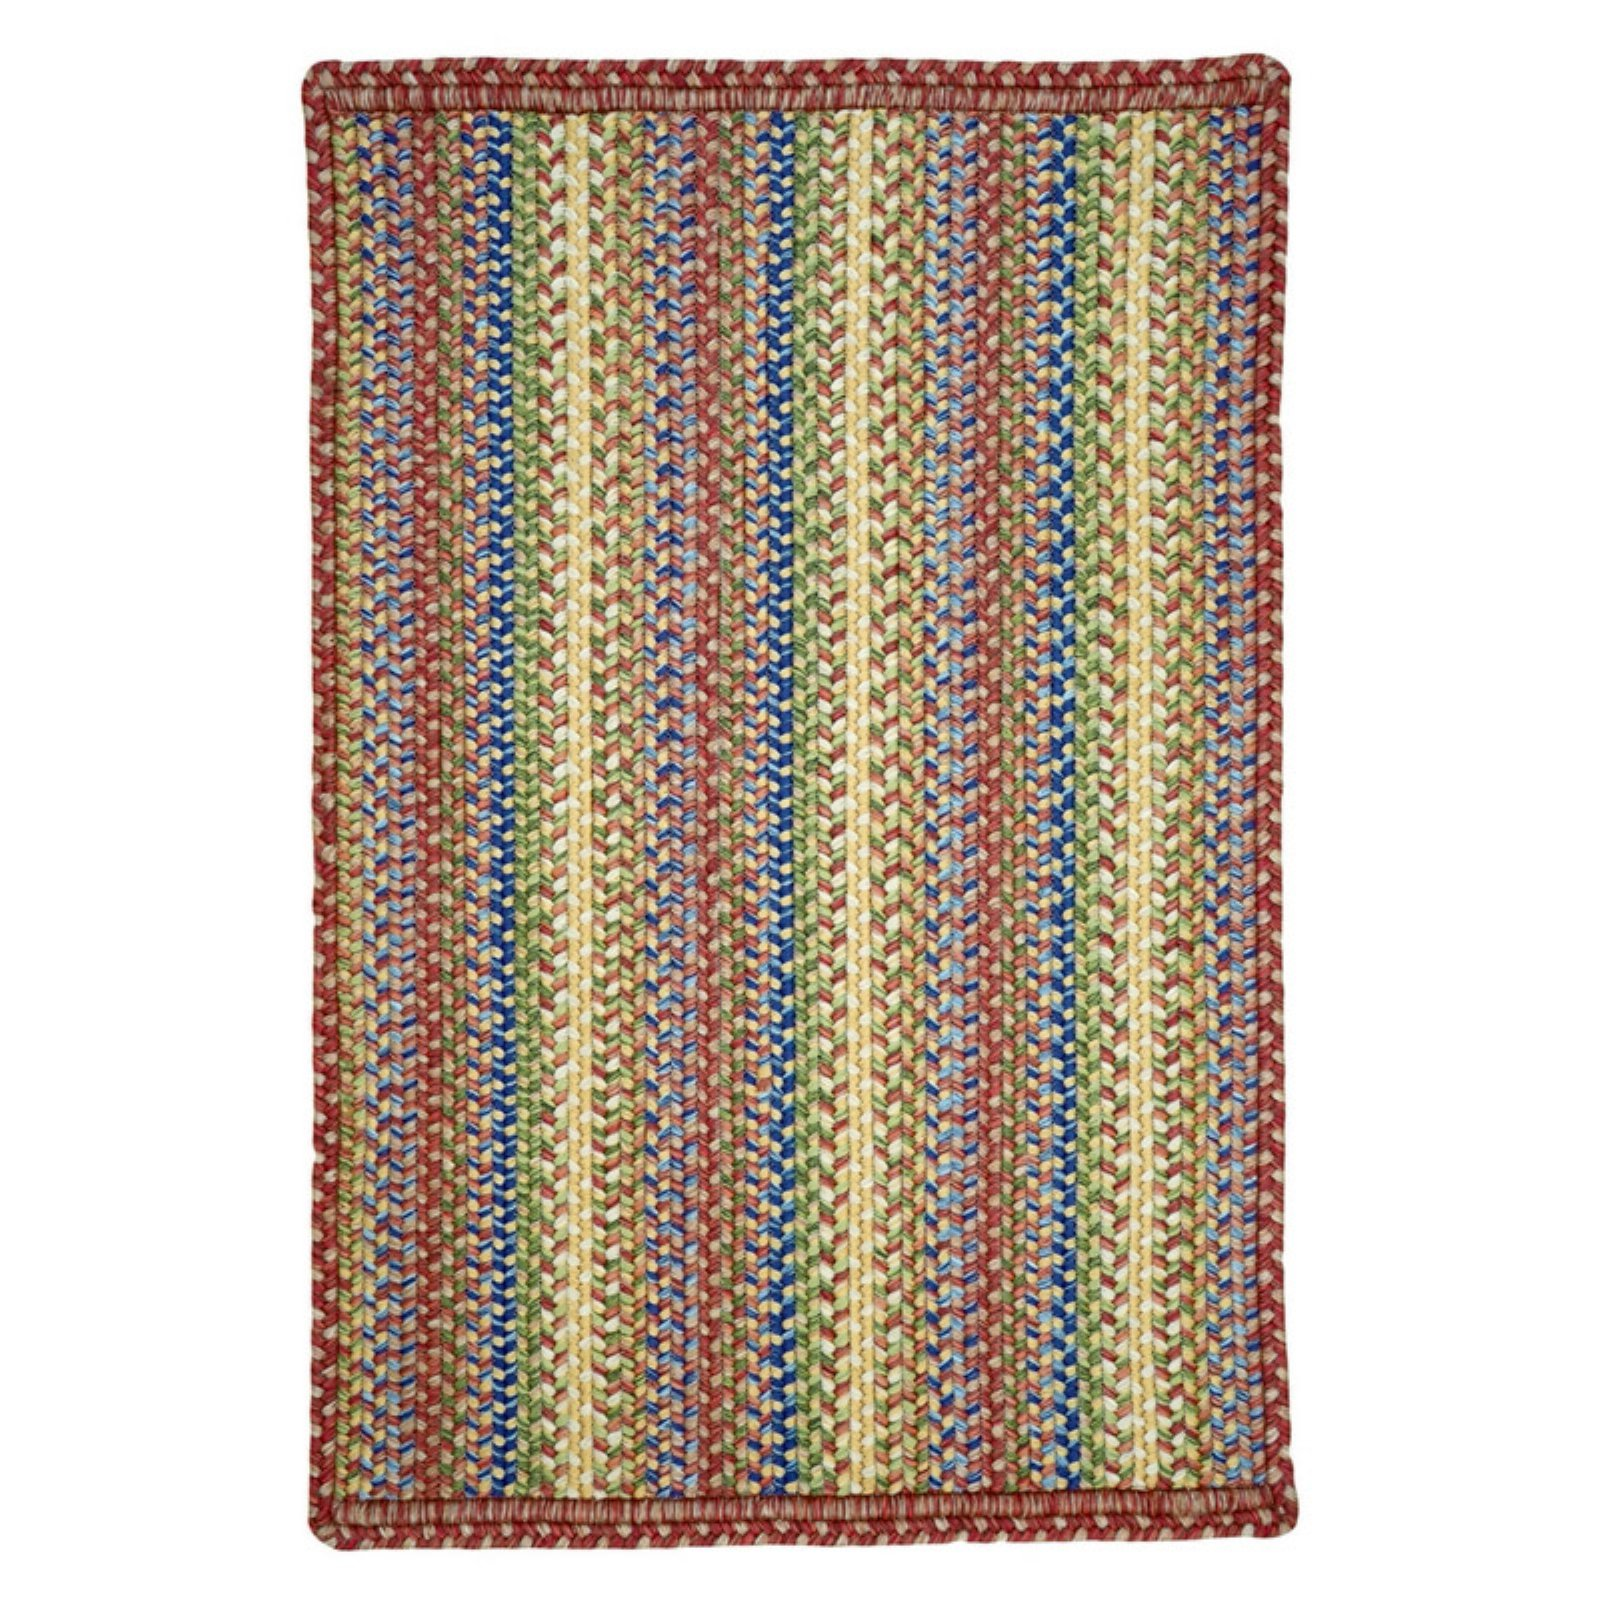 Homespice Decor Venice Indoor/Outdoor Braided Rug